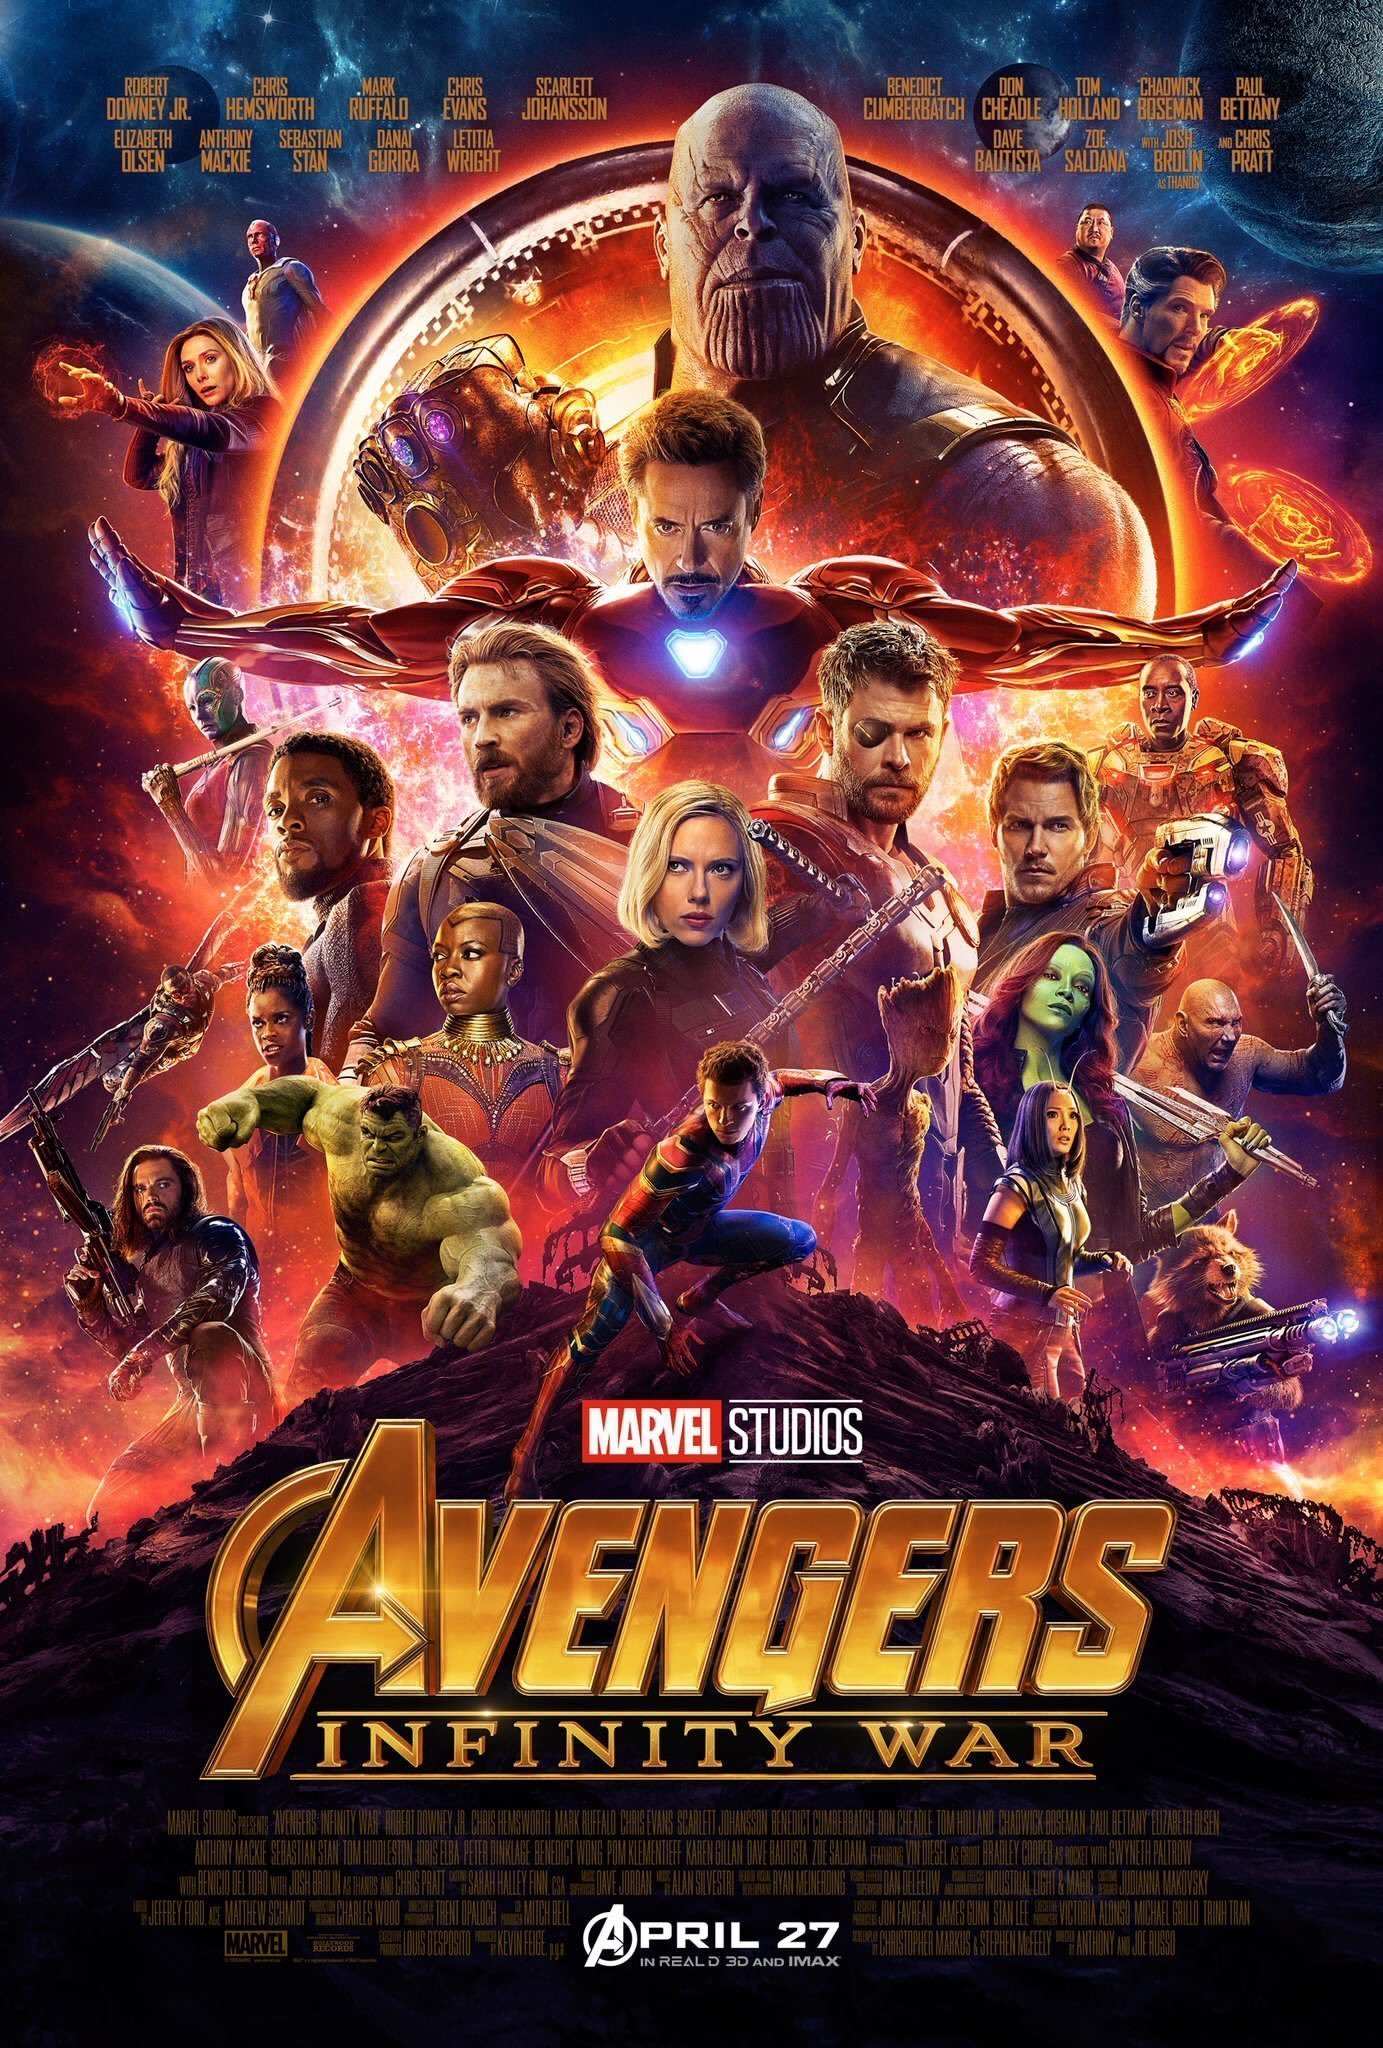 https://marvelll.fr/wp-content/uploads/2018/03/avengers-infinity-war-poster-officiel.jpg